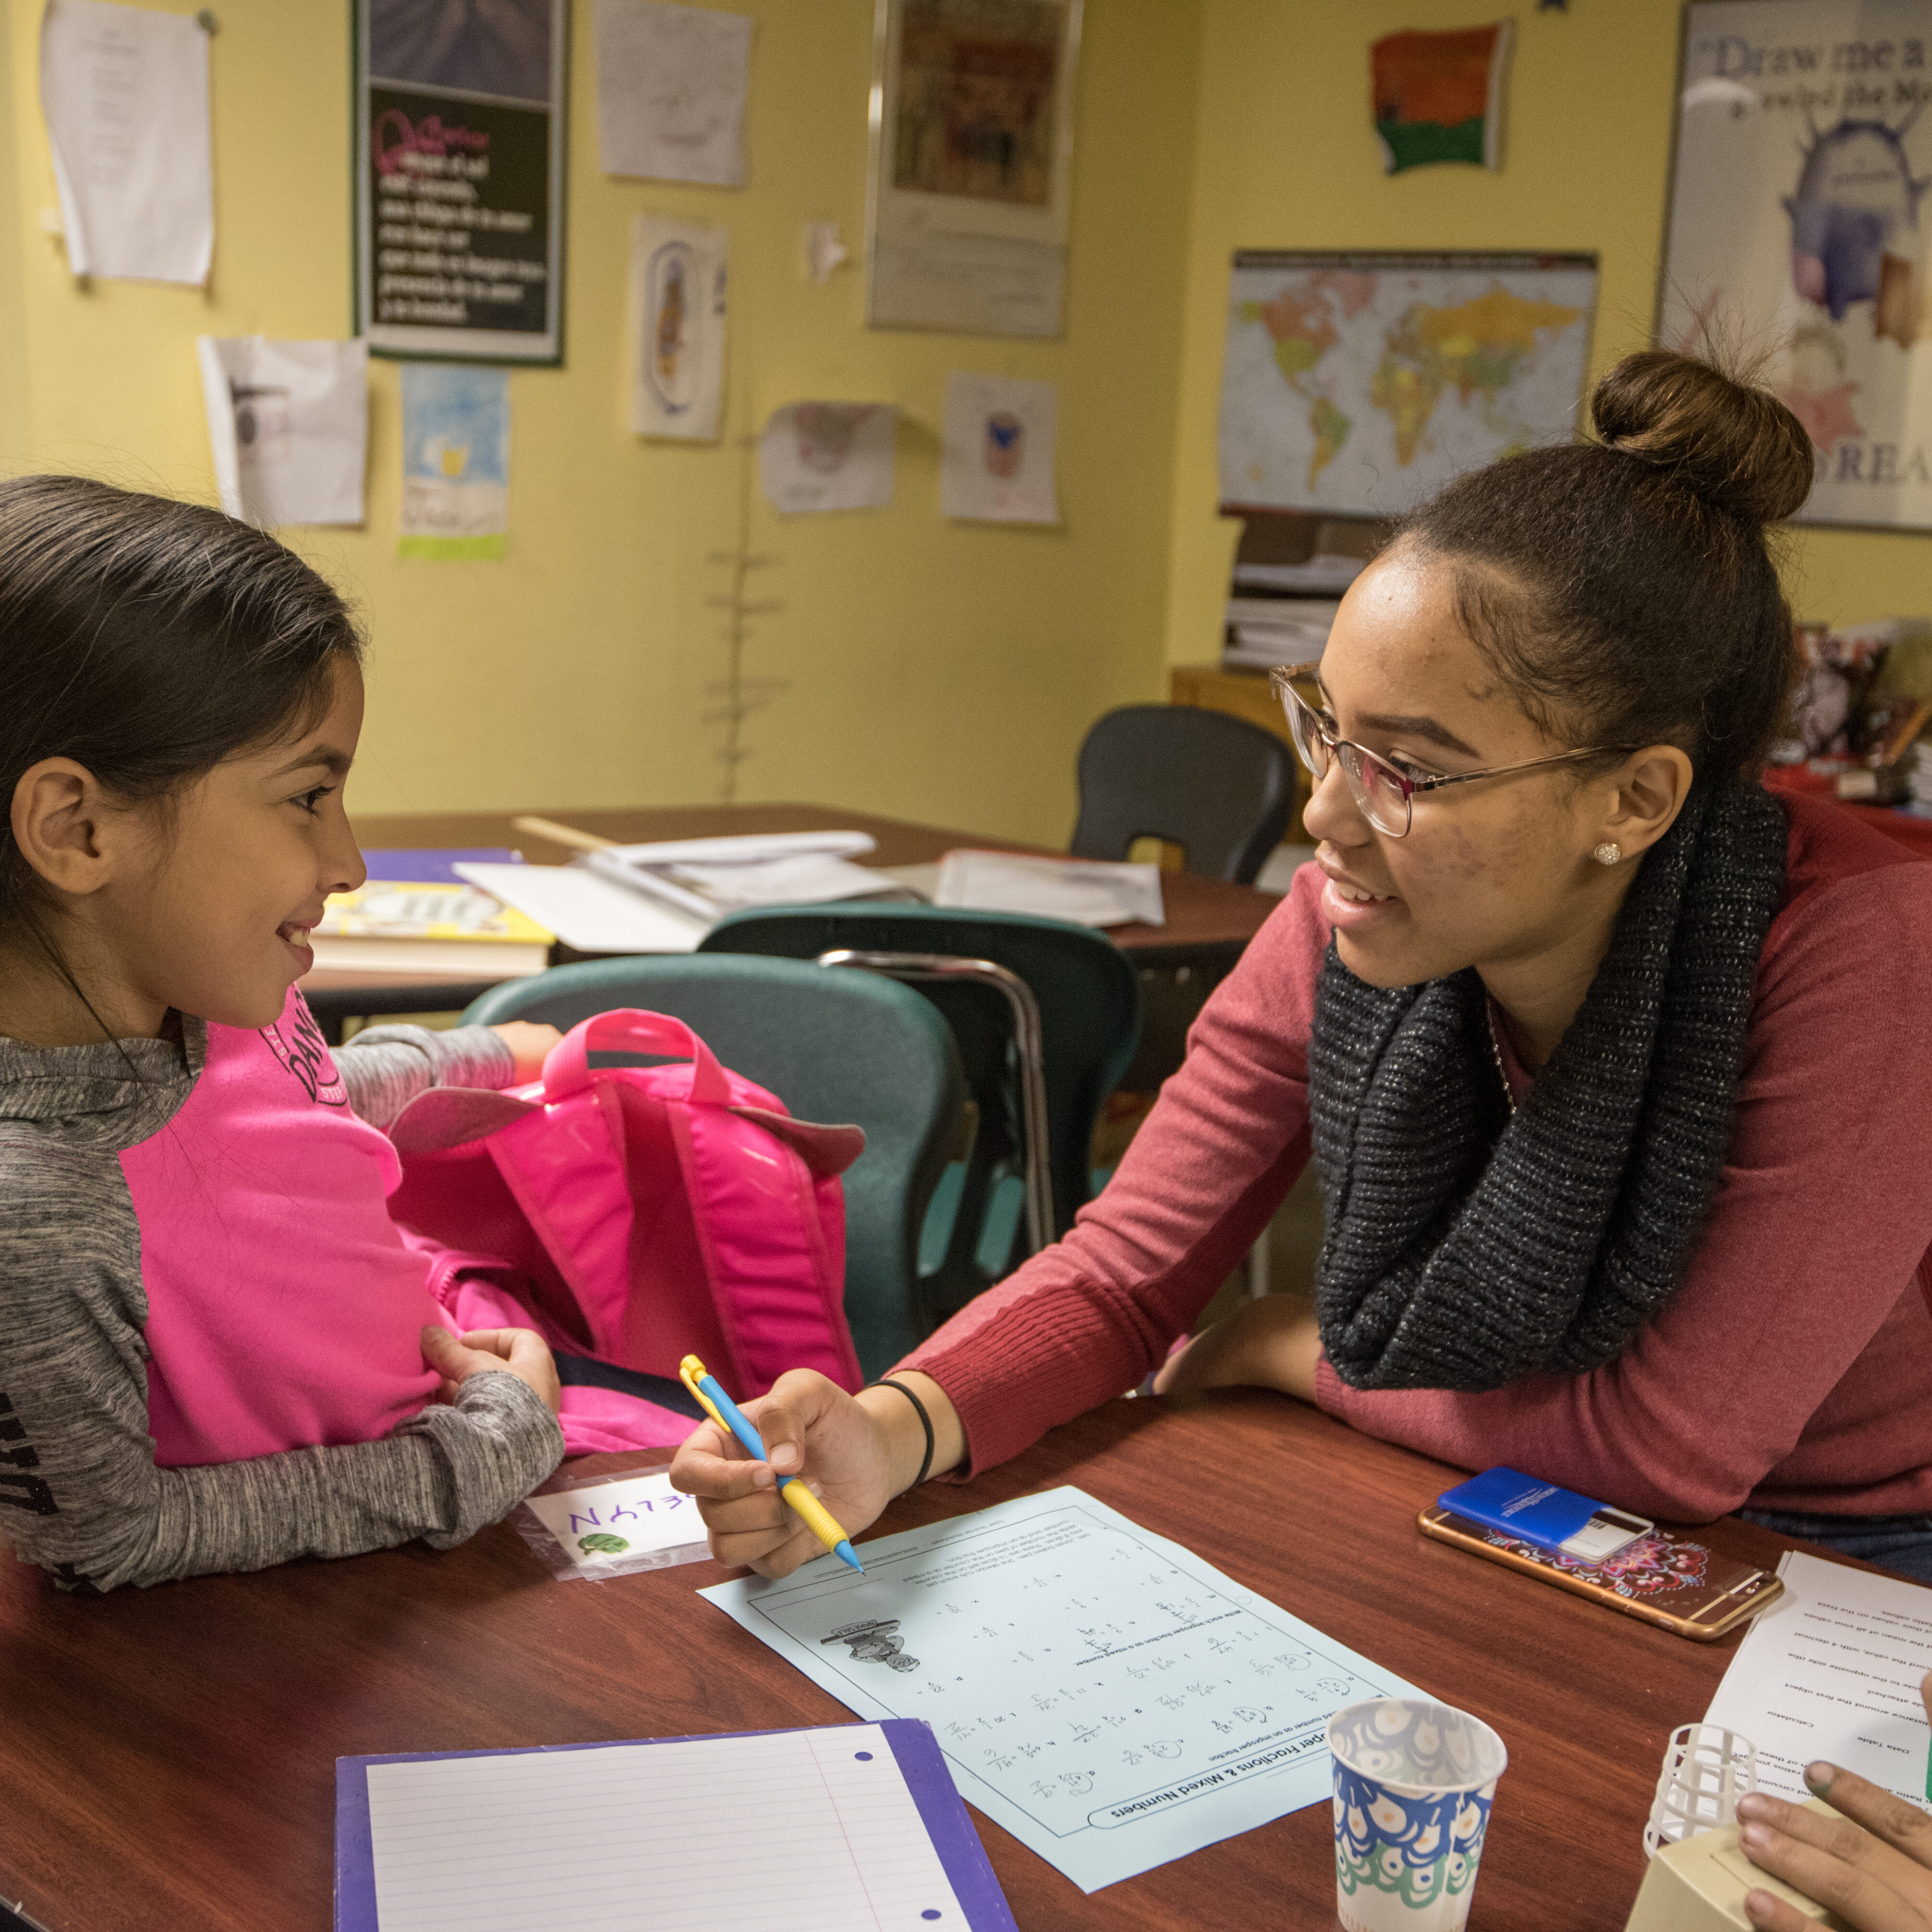 Homework House is a place that helps kids learn and teaches adult about compassion and understanding - Vanessa , Mt. Holyoke College volunteer